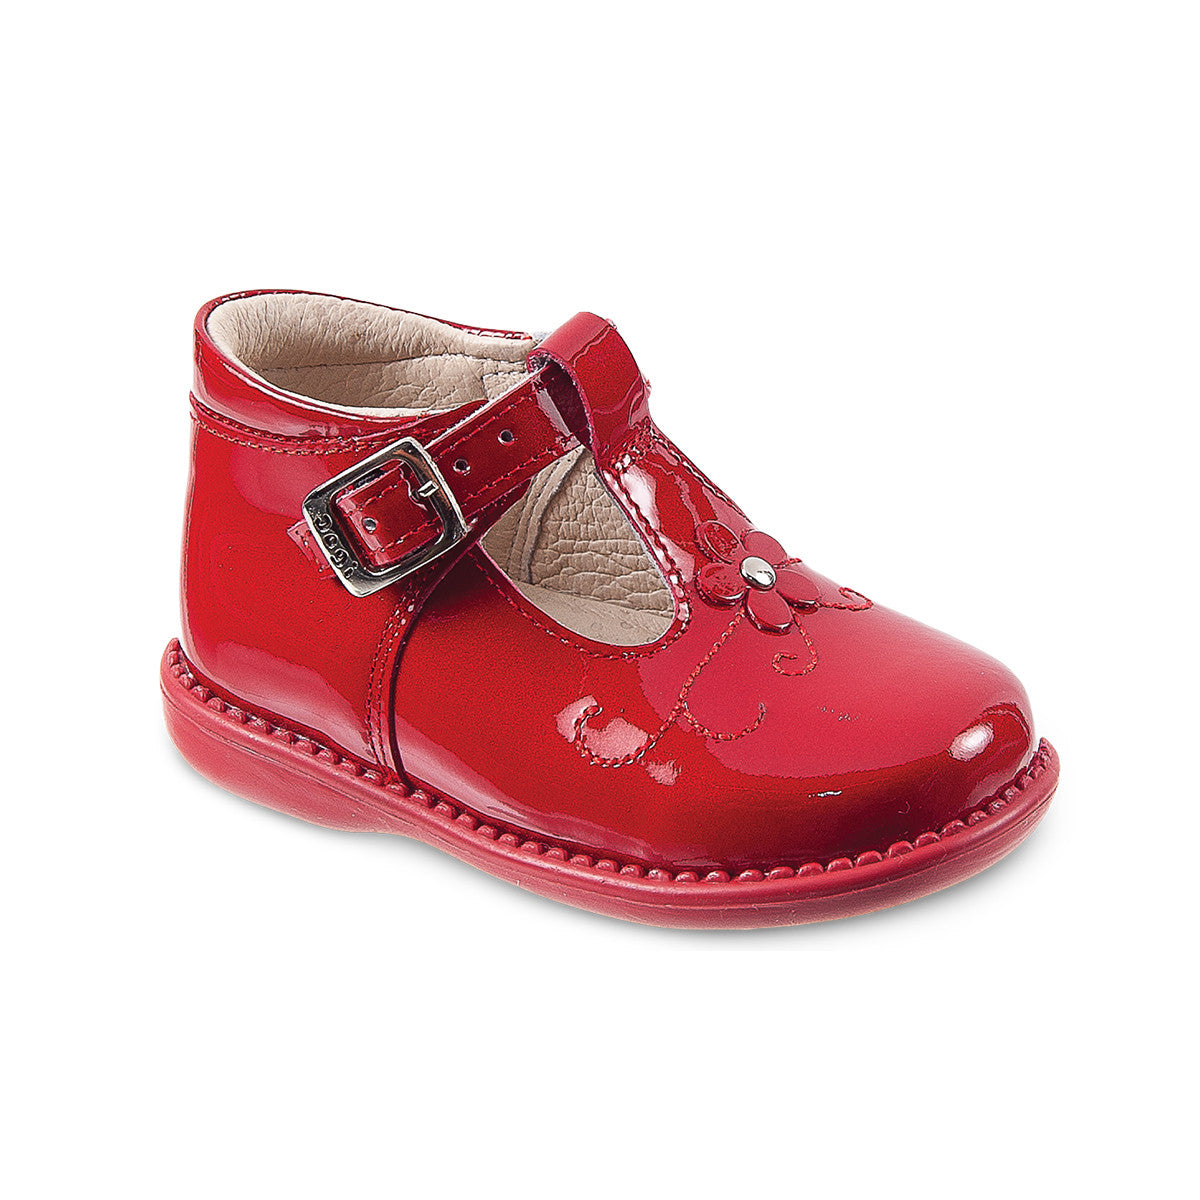 DG-765 - Red Patent Leather - Dogi